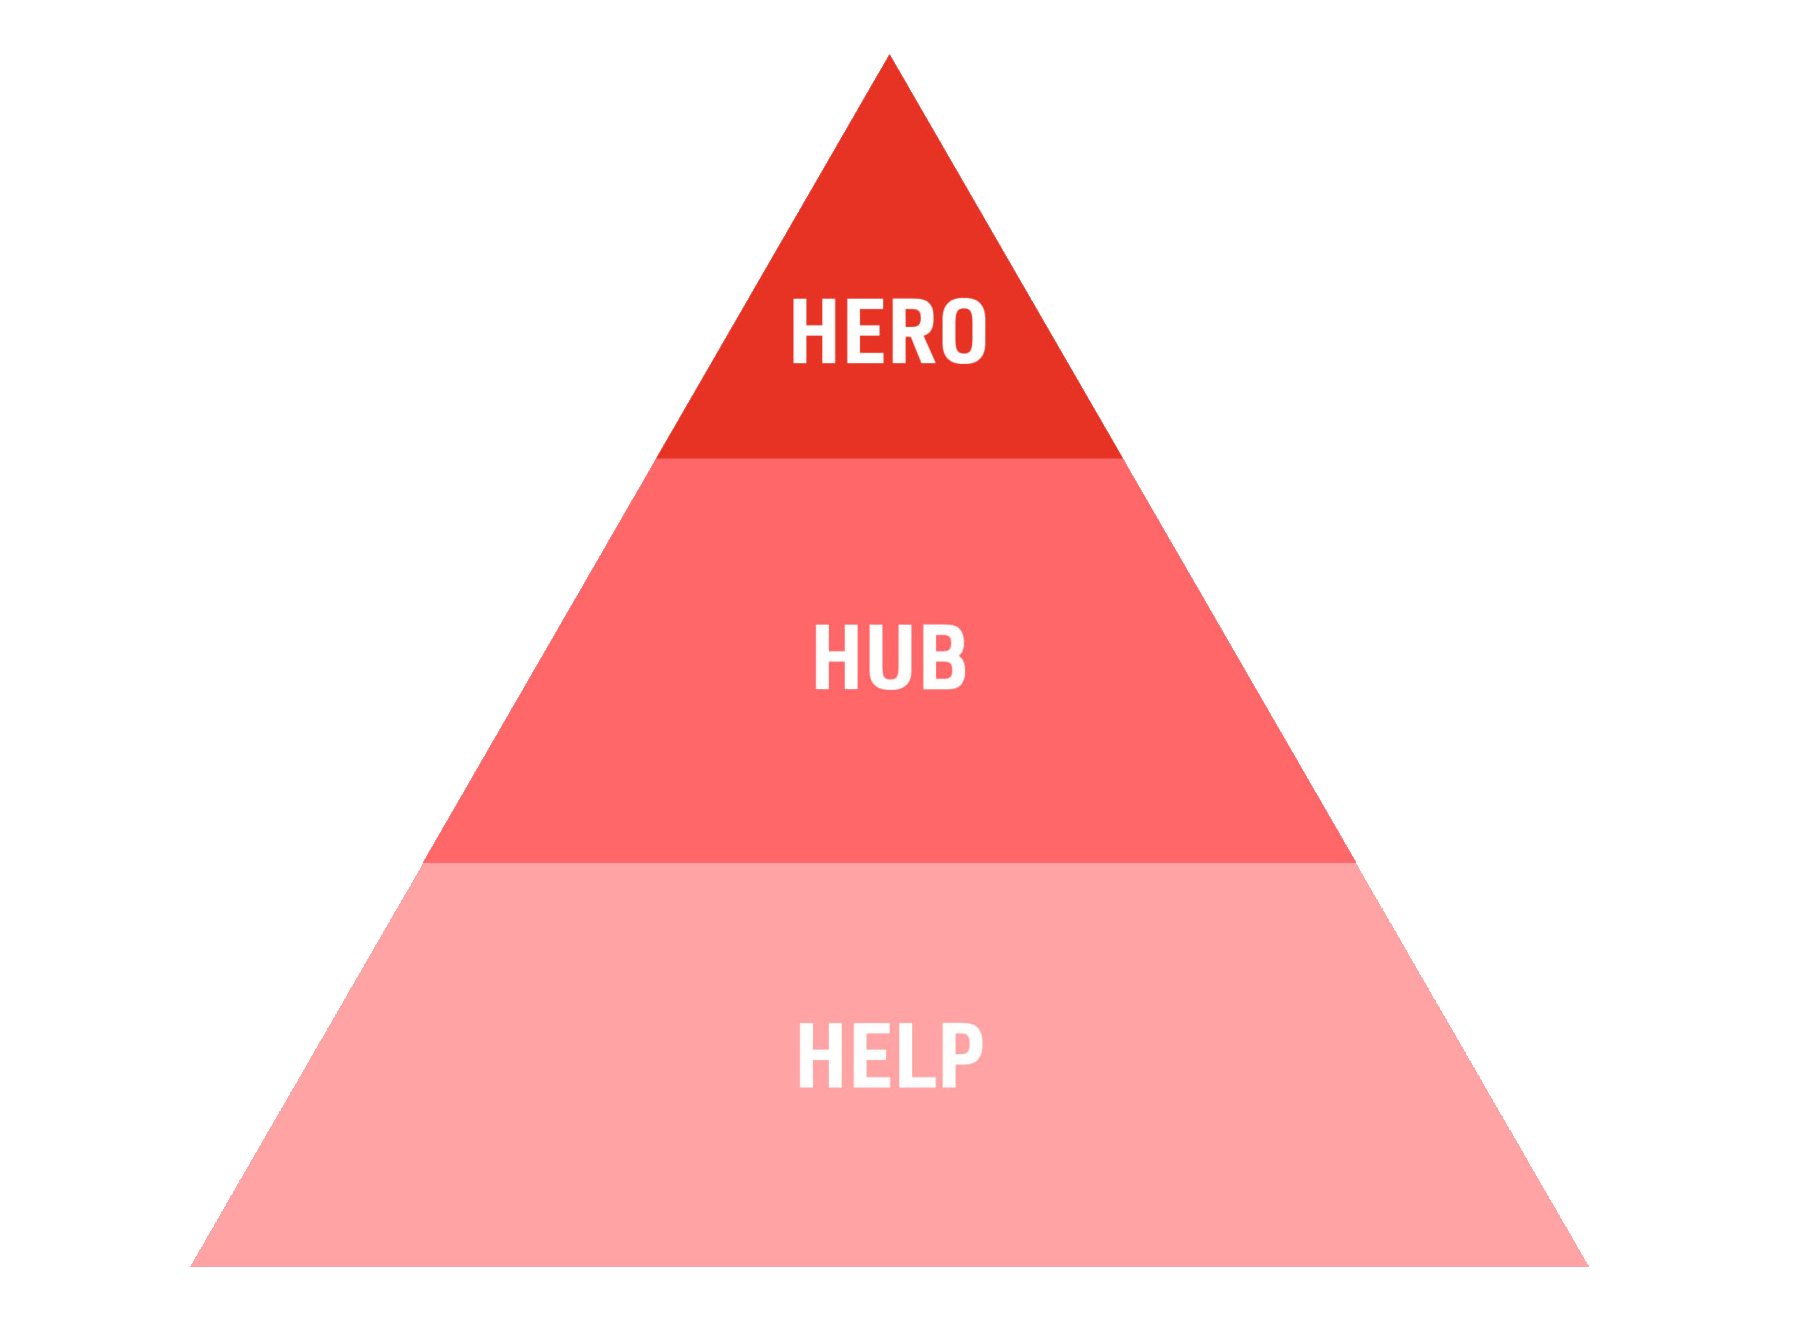 hero hub help content marketing